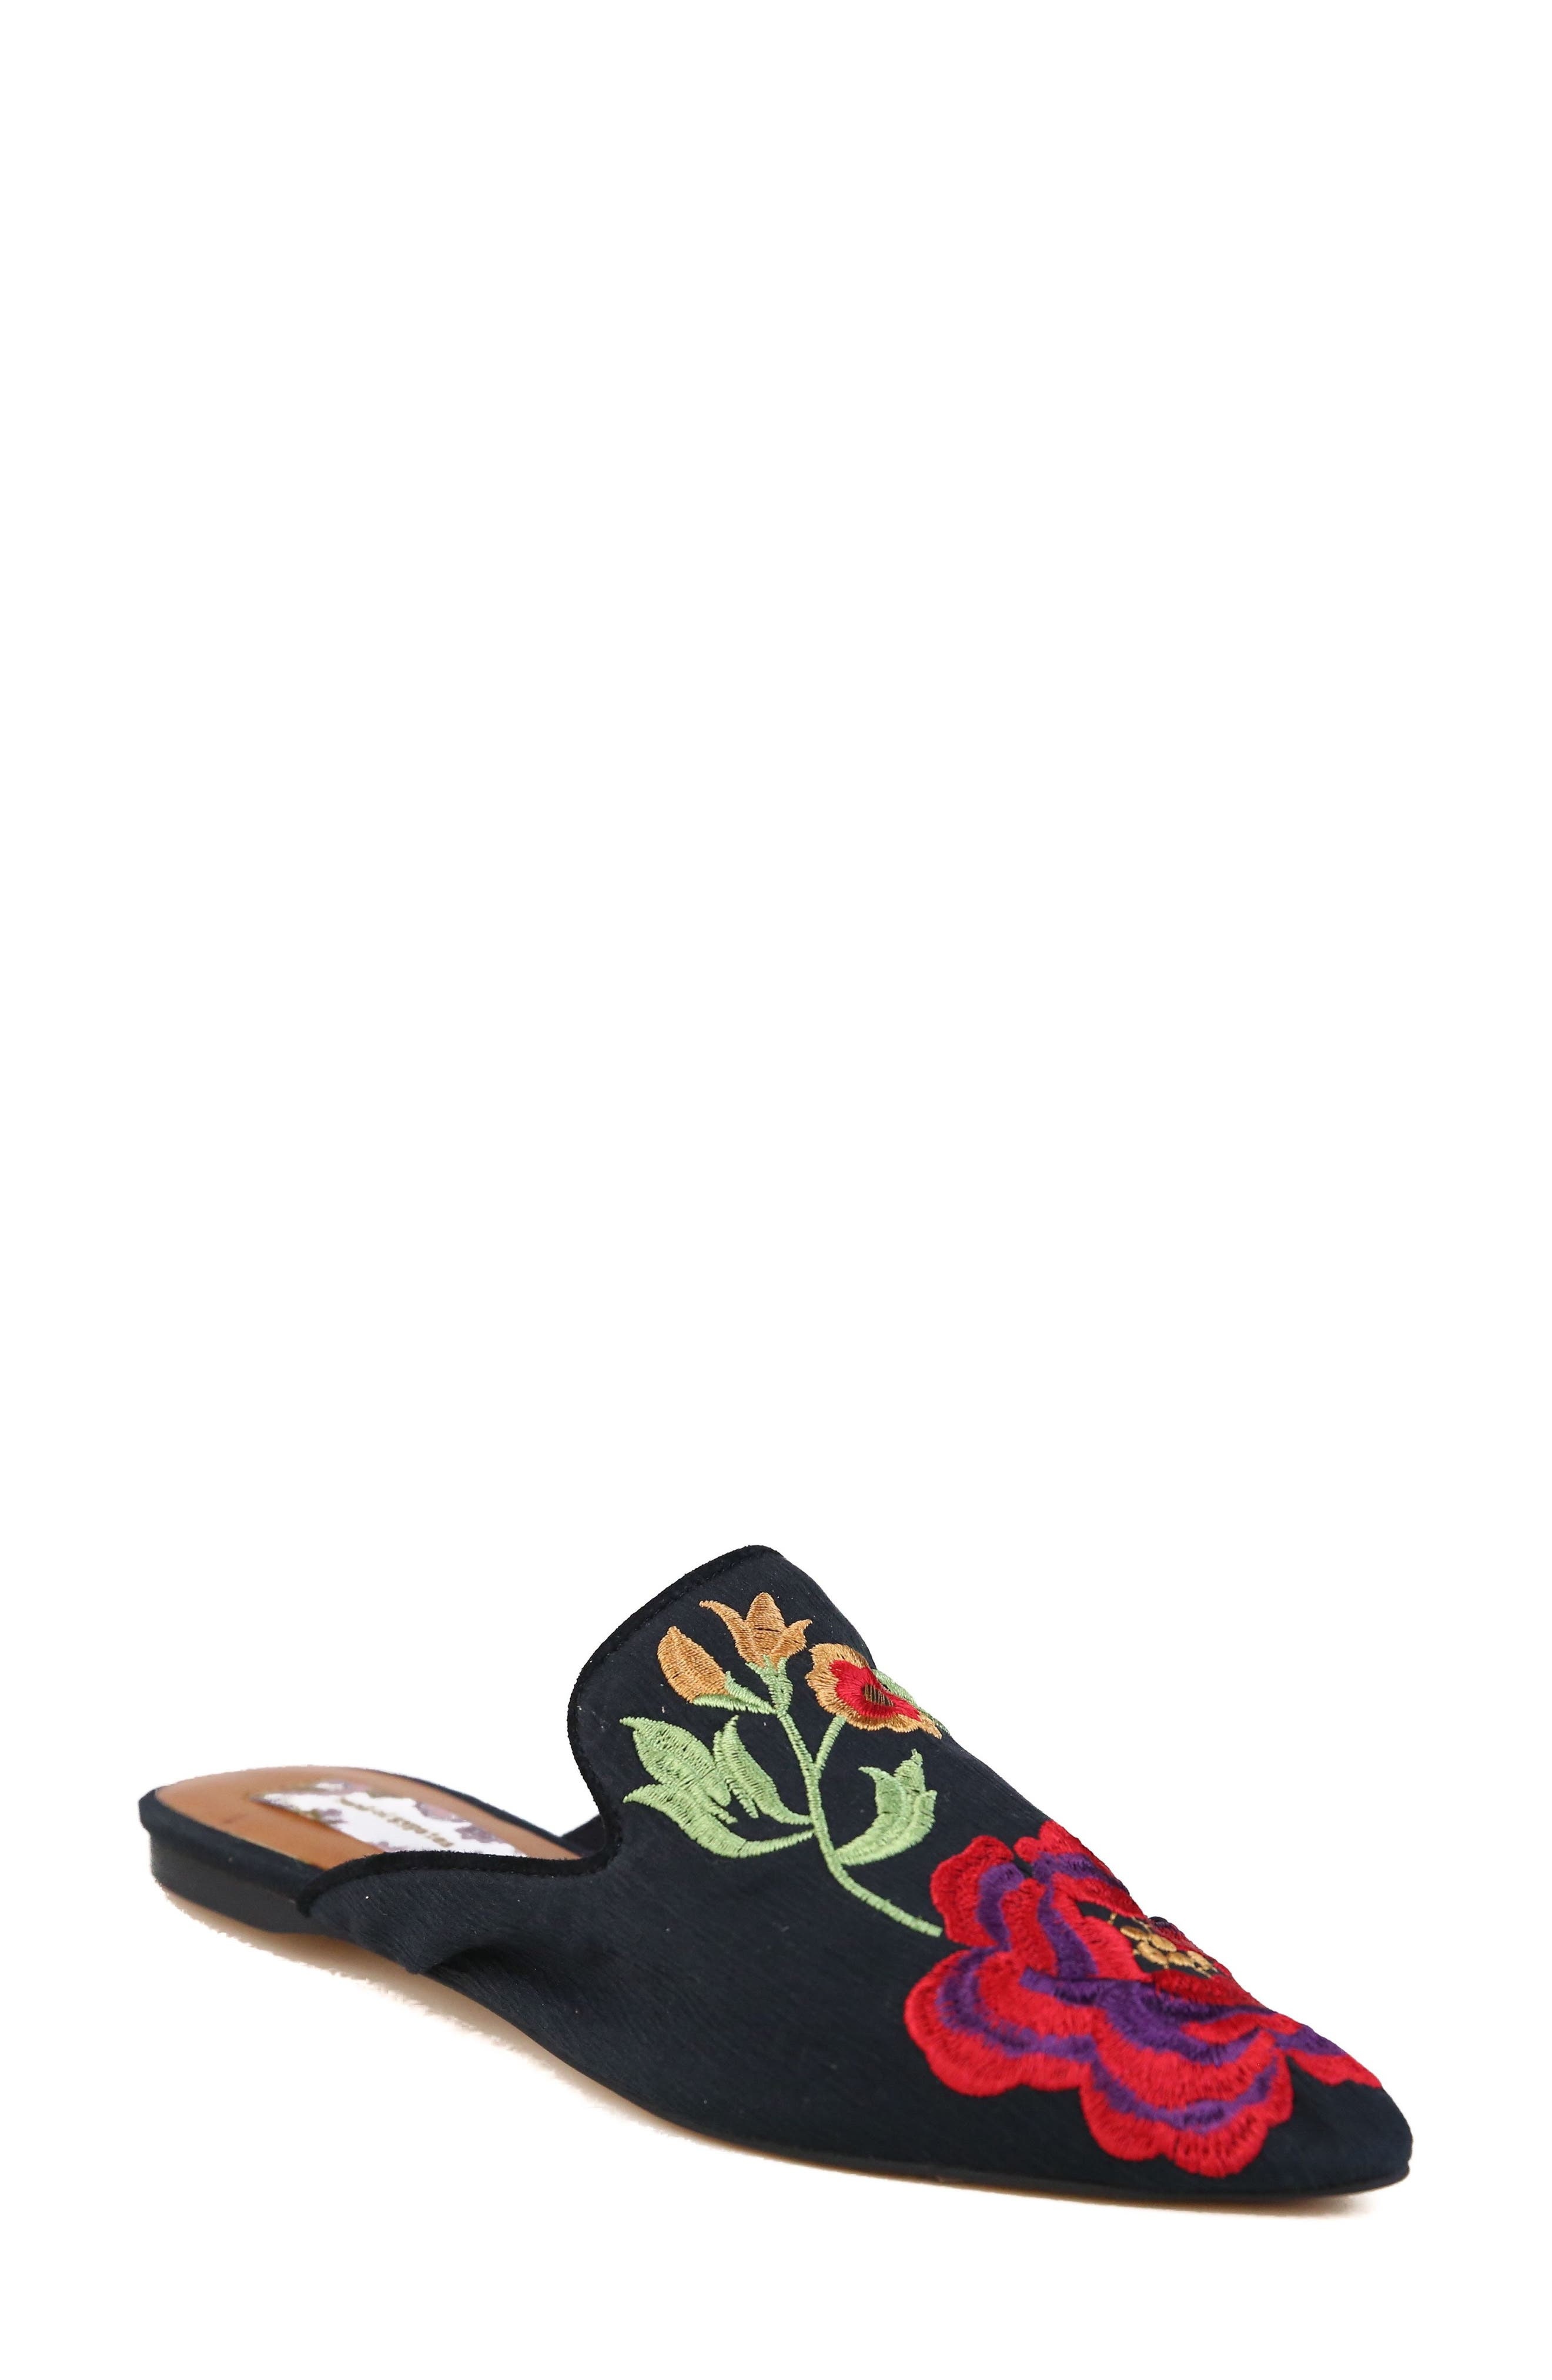 Band of Gypsies Landslide Embroidered Mule Flat (Women)